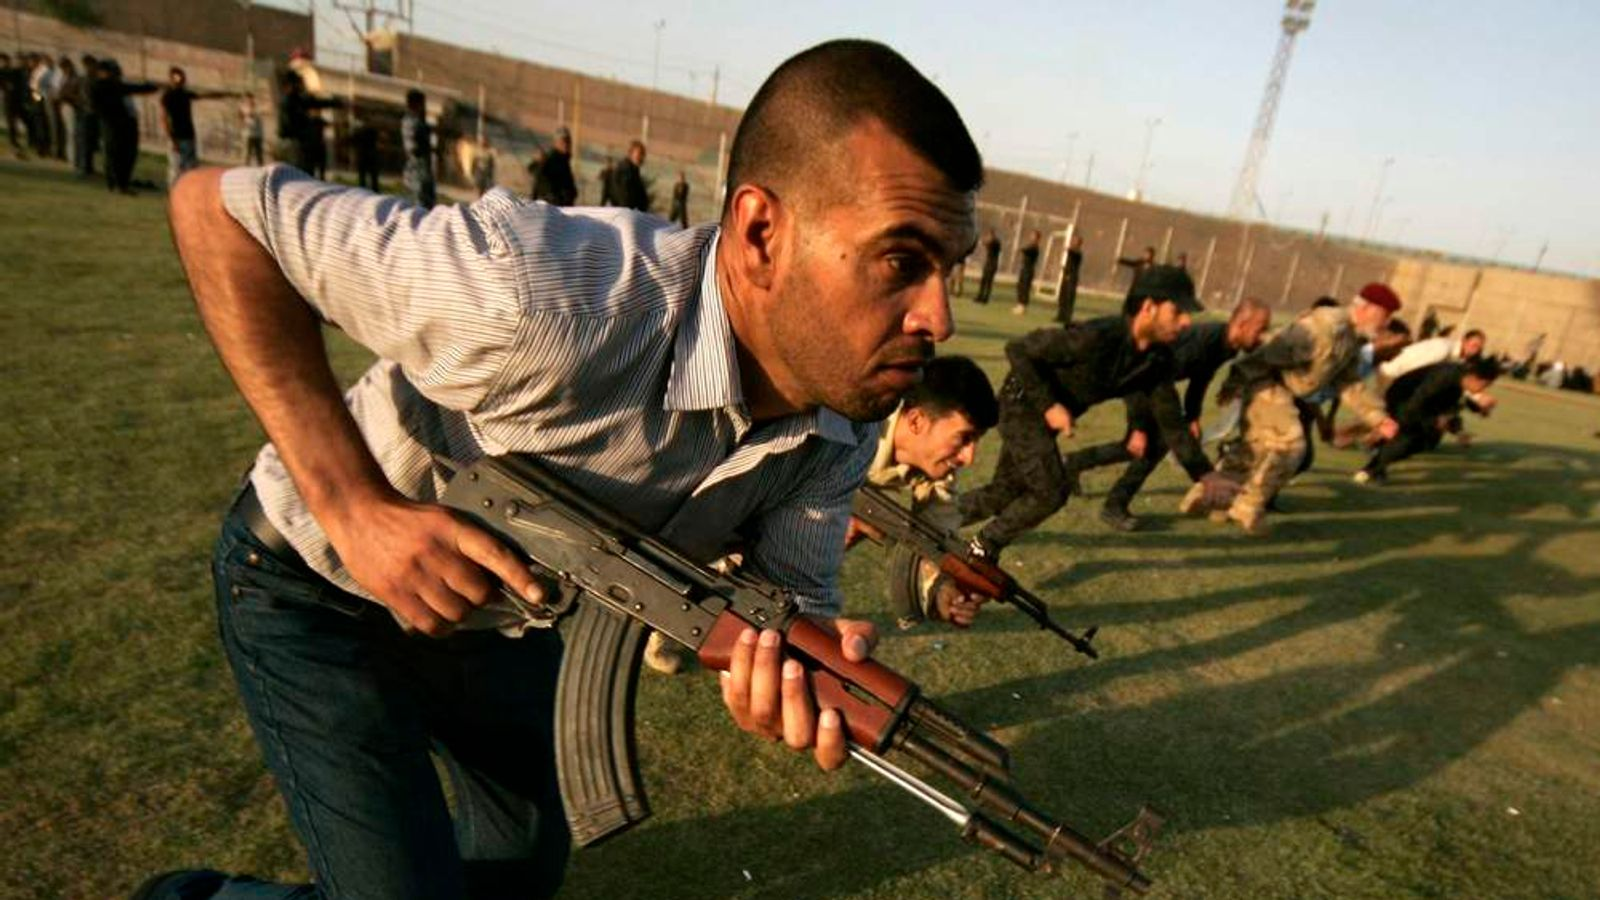 Shi'ite volunteers, who have joined the Iraqi army to fight the ISIL, take part in military-style training in Kerbala